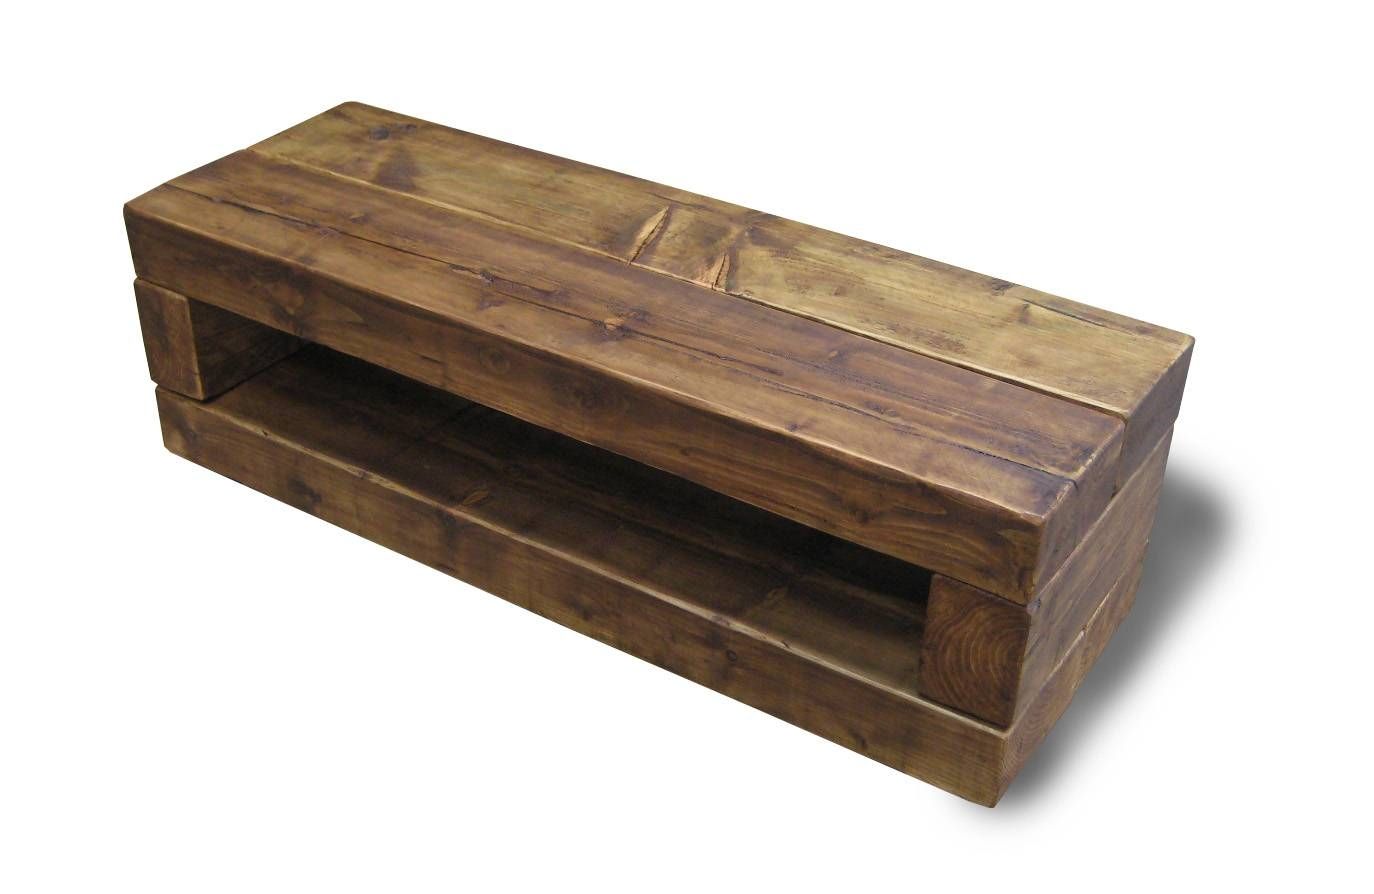 Chunky Stretch Tv Stand - The Cool Wood Company intended for Chunky Oak Tv Unit (Image 3 of 15)